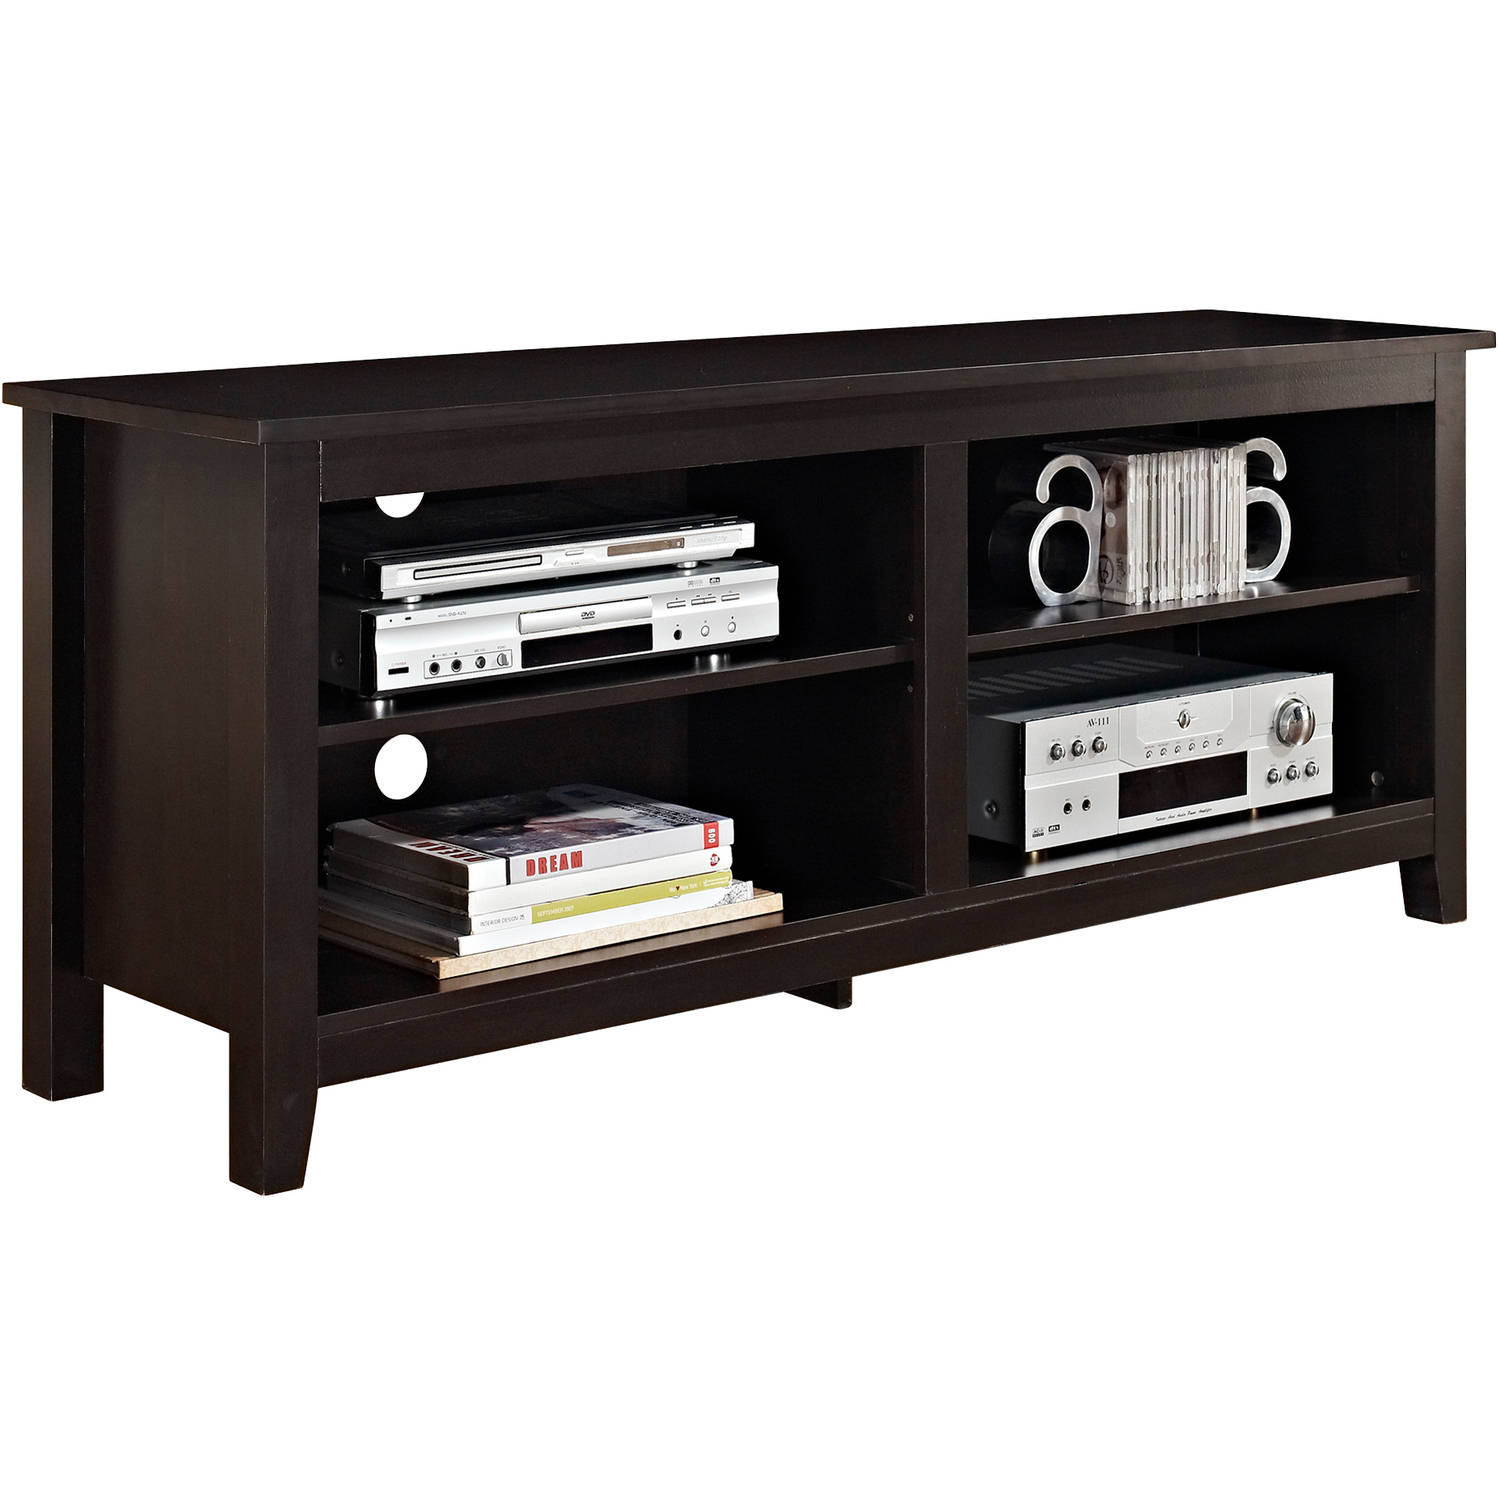 Rustic Wood Tv Stand Drift Entertainment Center Media Storage